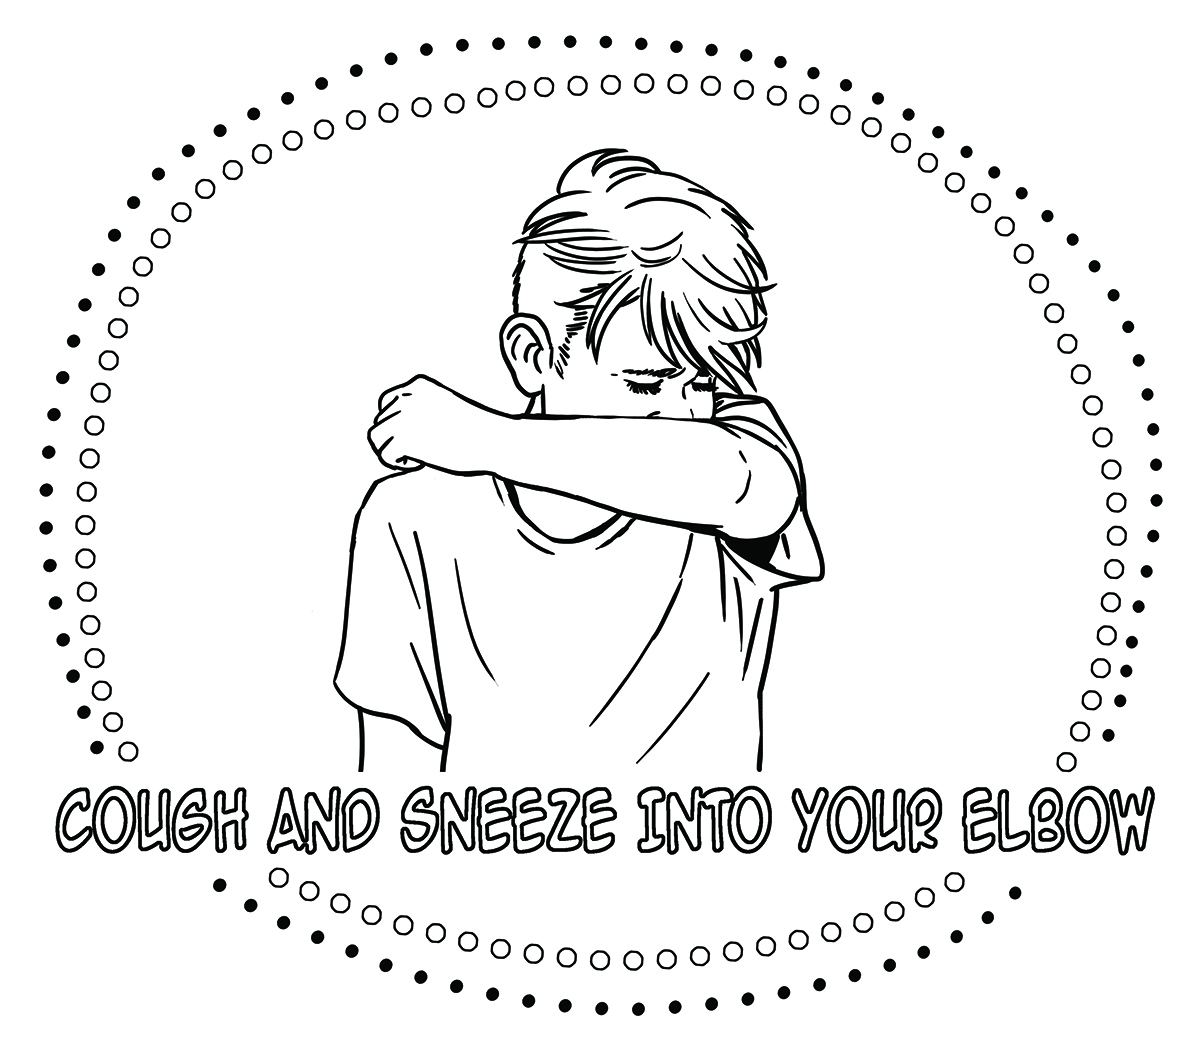 sample of cough into elbow colouring sheet